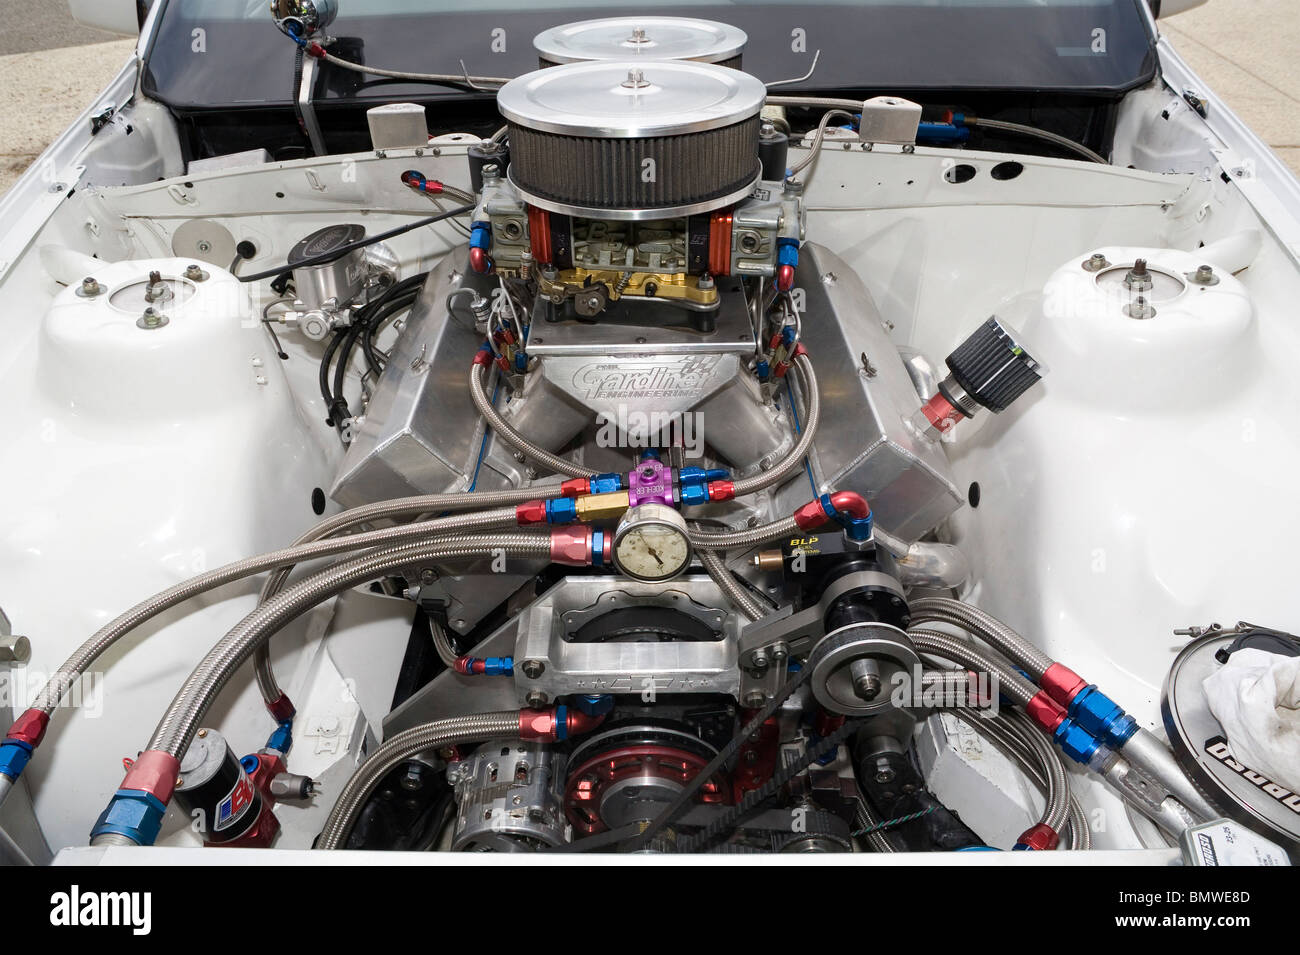 High Power V8 Drag Racing Engine Stock Photo Royalty Free